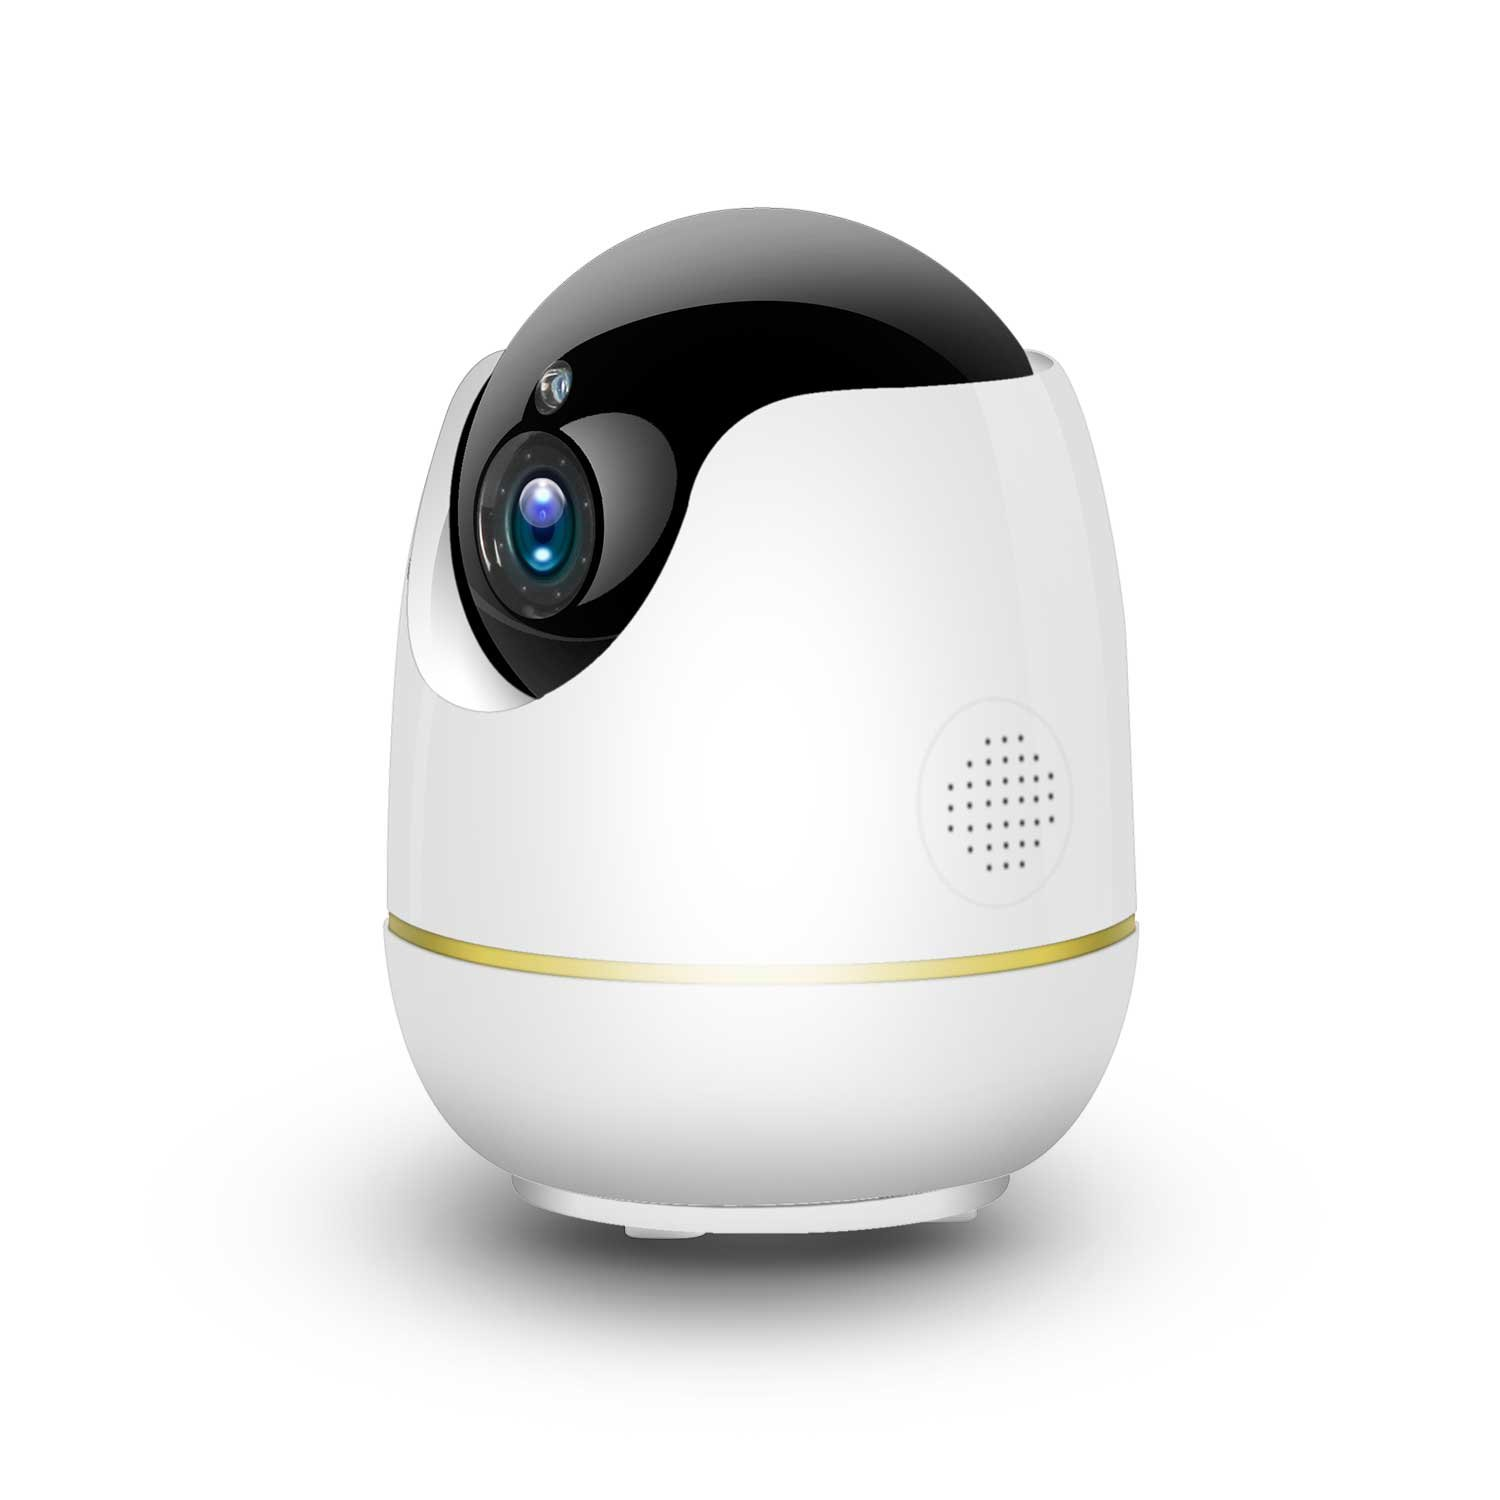 Home Security Camera - HD 1080P WiFi IP Dome Camera, Compatible with Alexa Show, Pan/Tilt and 4xZoom for Baby/Store/Office/Pet/Elder Minitoring, Free App with No Monthly Fee(Plug-in Required)